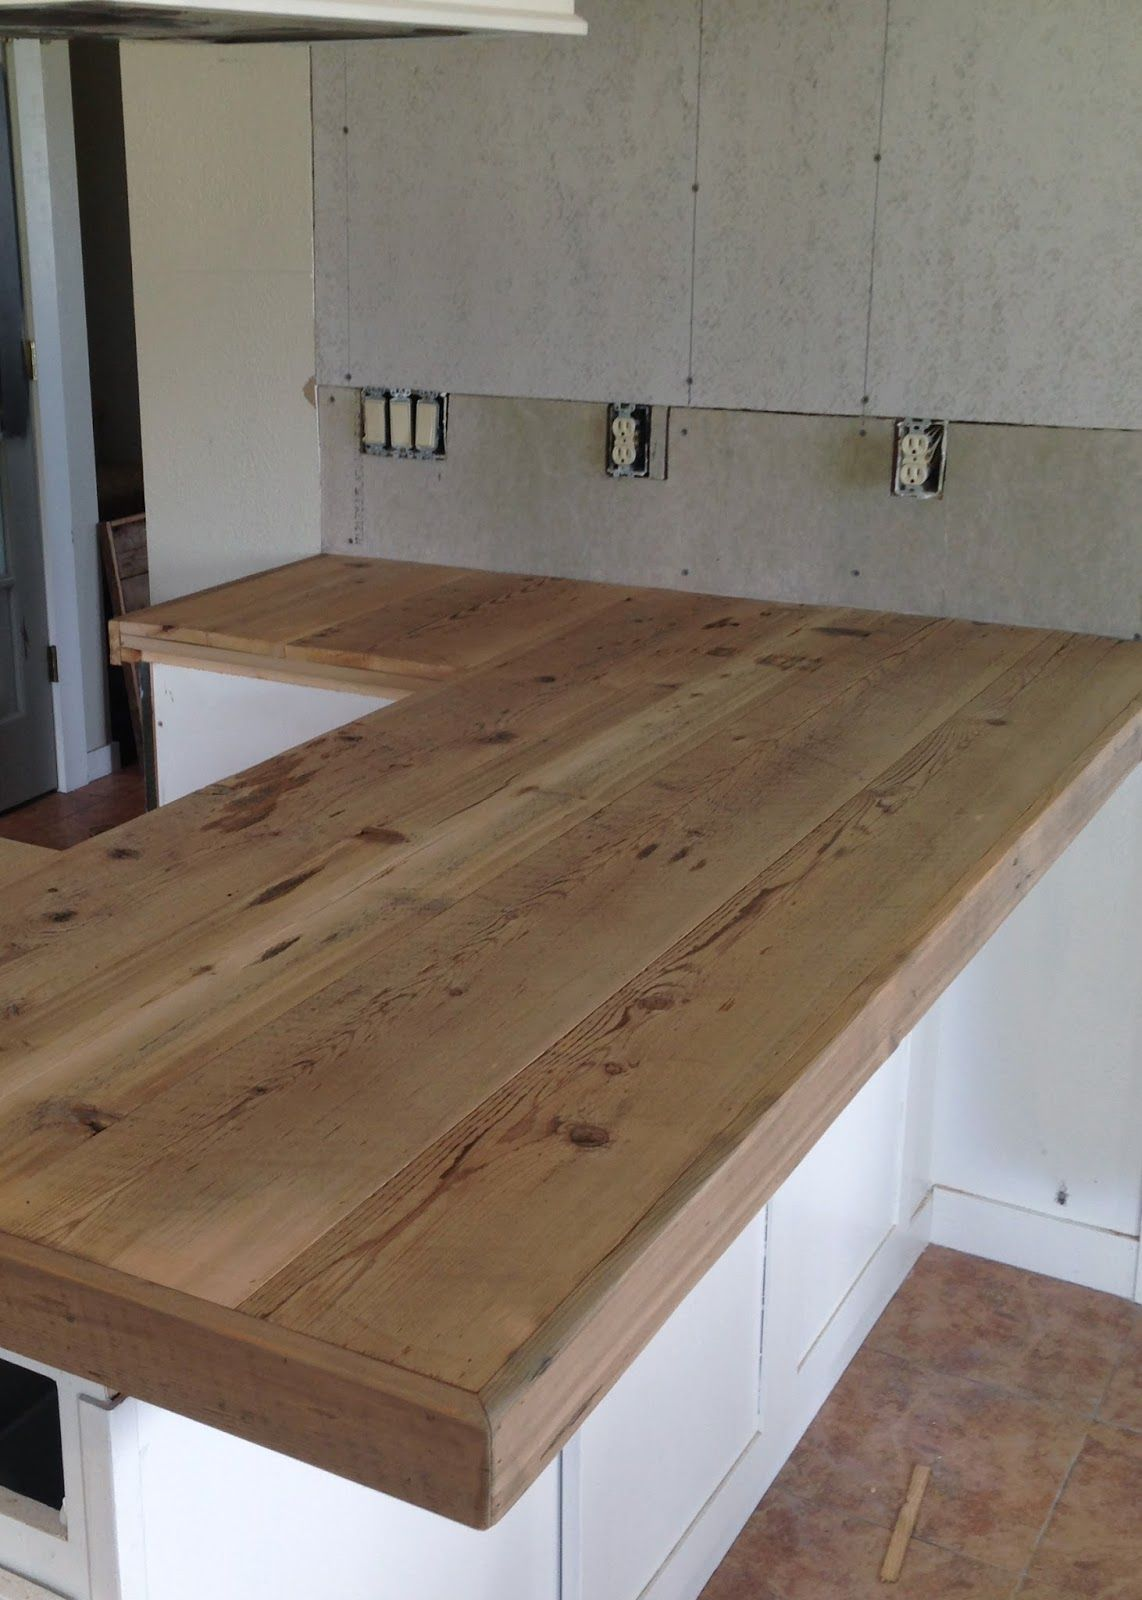 Waterproof Wood Countertop Diy Reclaimed Wood Countertop Projects Diy Countertops